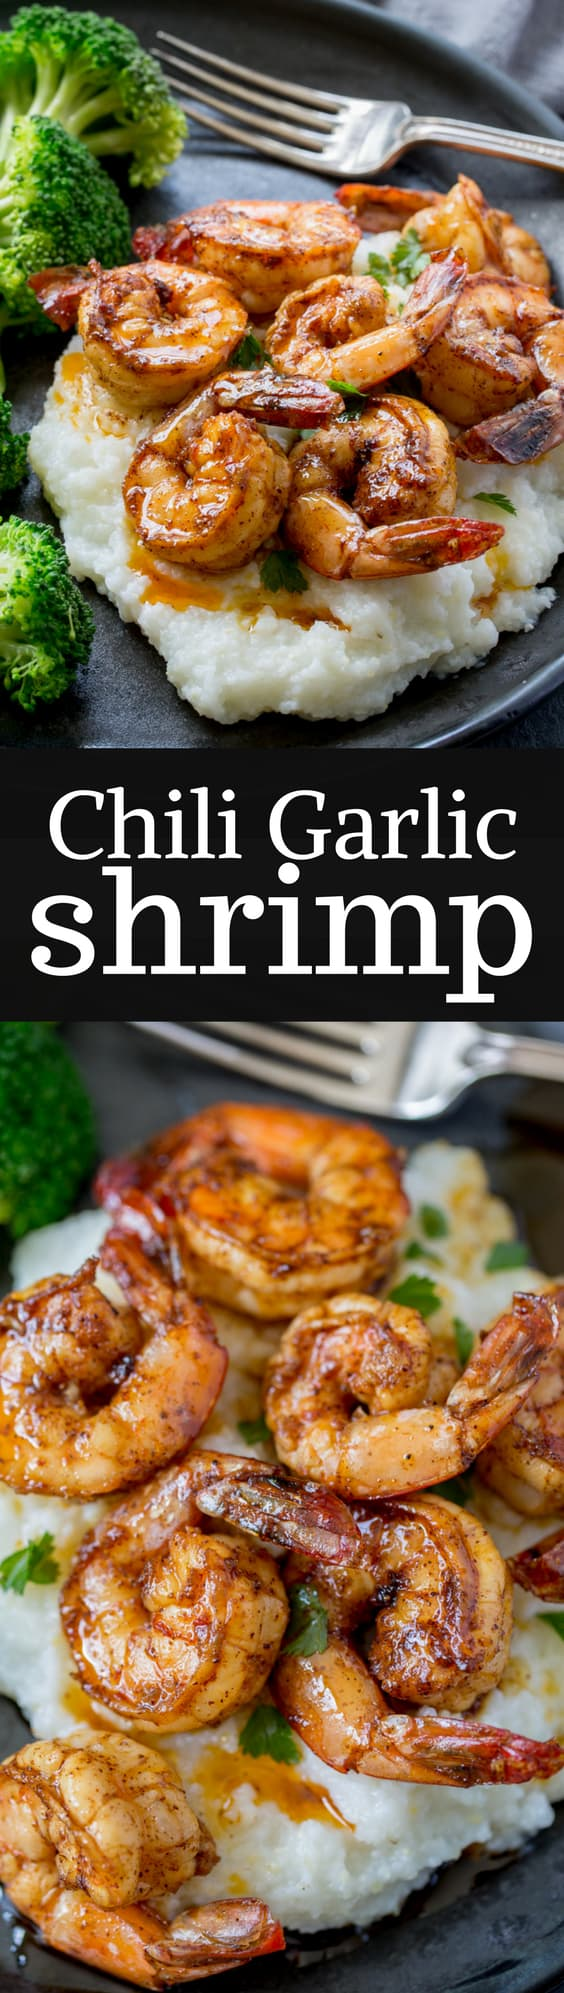 "Chili Garlic Shrimp - from ""The Weeknight Dinner Cookbook"" - a delicious, flavorful shrimp that is on the table in minutes!  www.savingdessert.com"